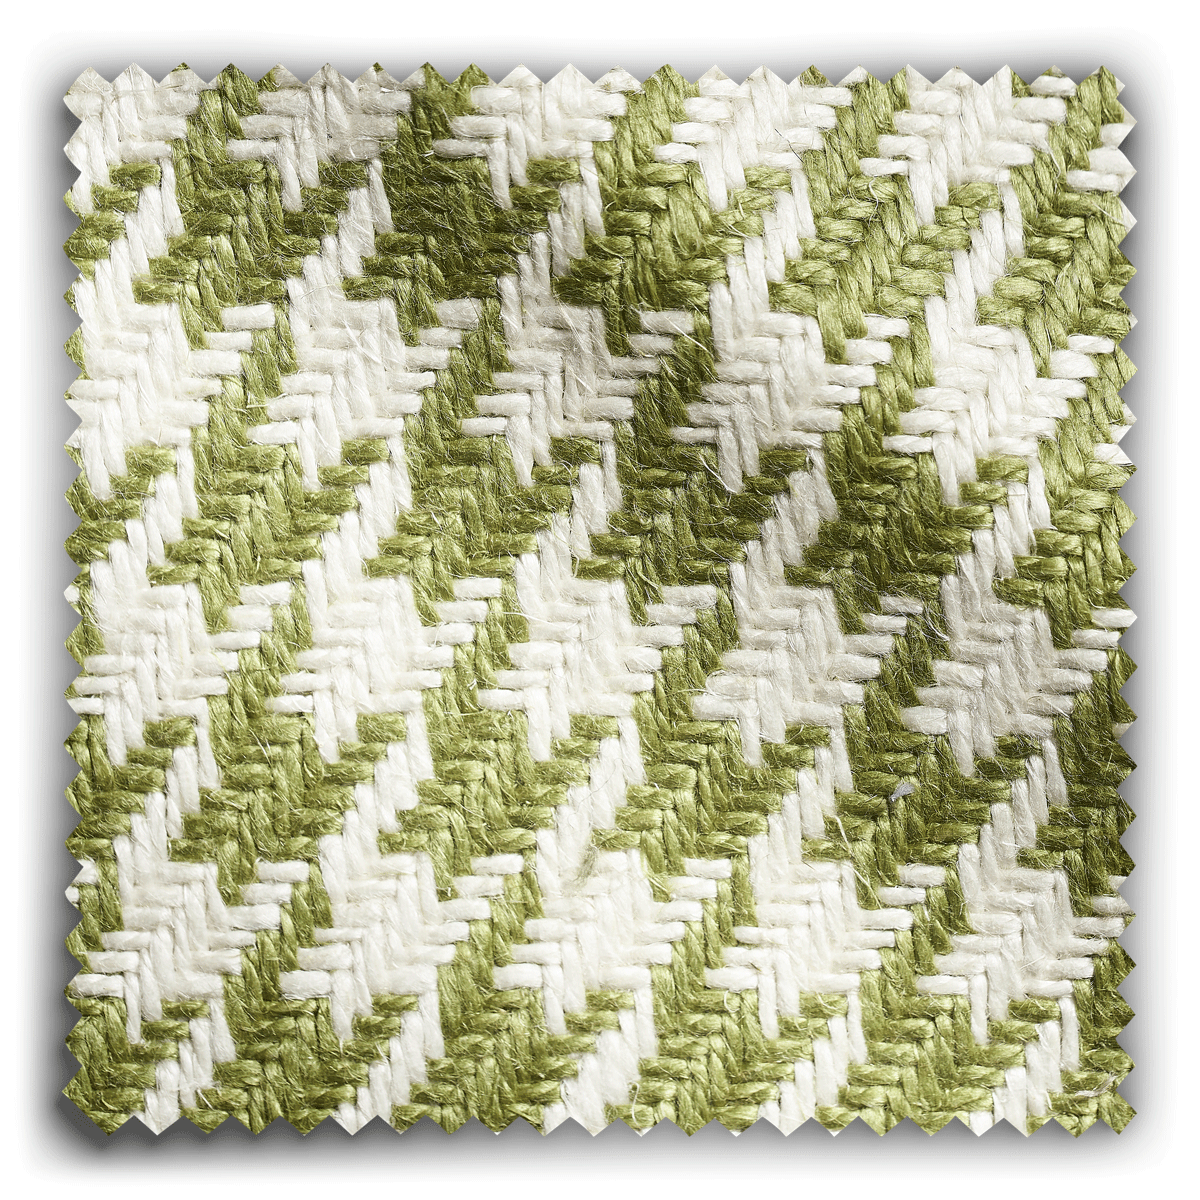 Image of Houndstooth Green and White fabric